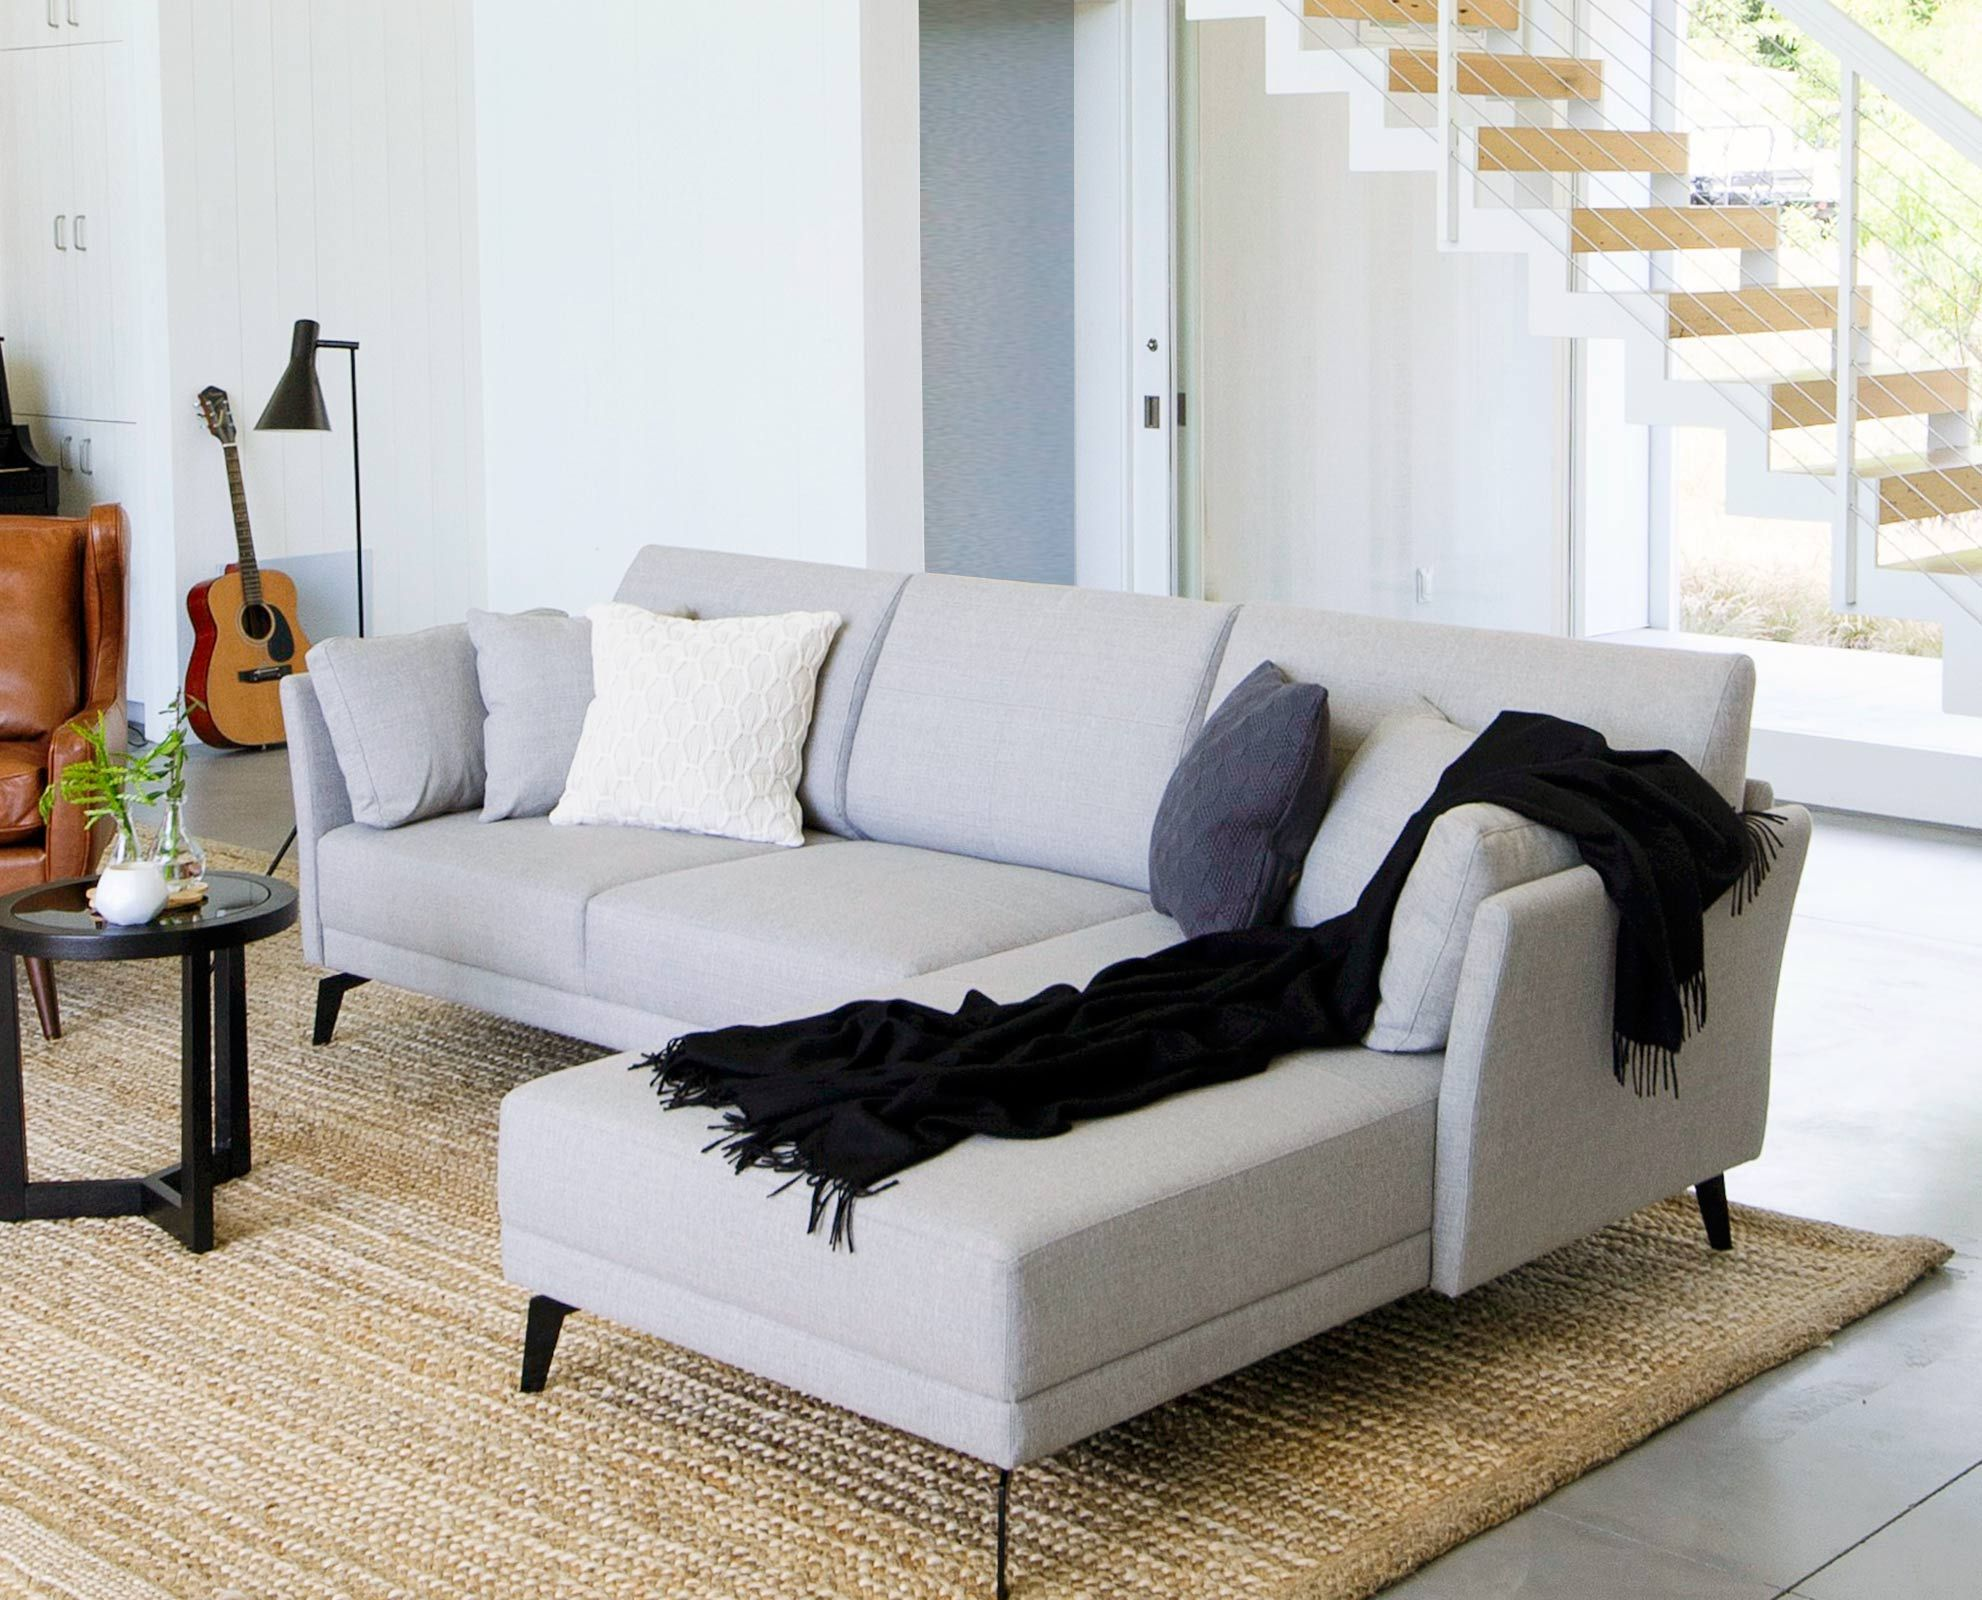 The Renata Chaise Sectional Sofa From Dania Furniture Co Tailored